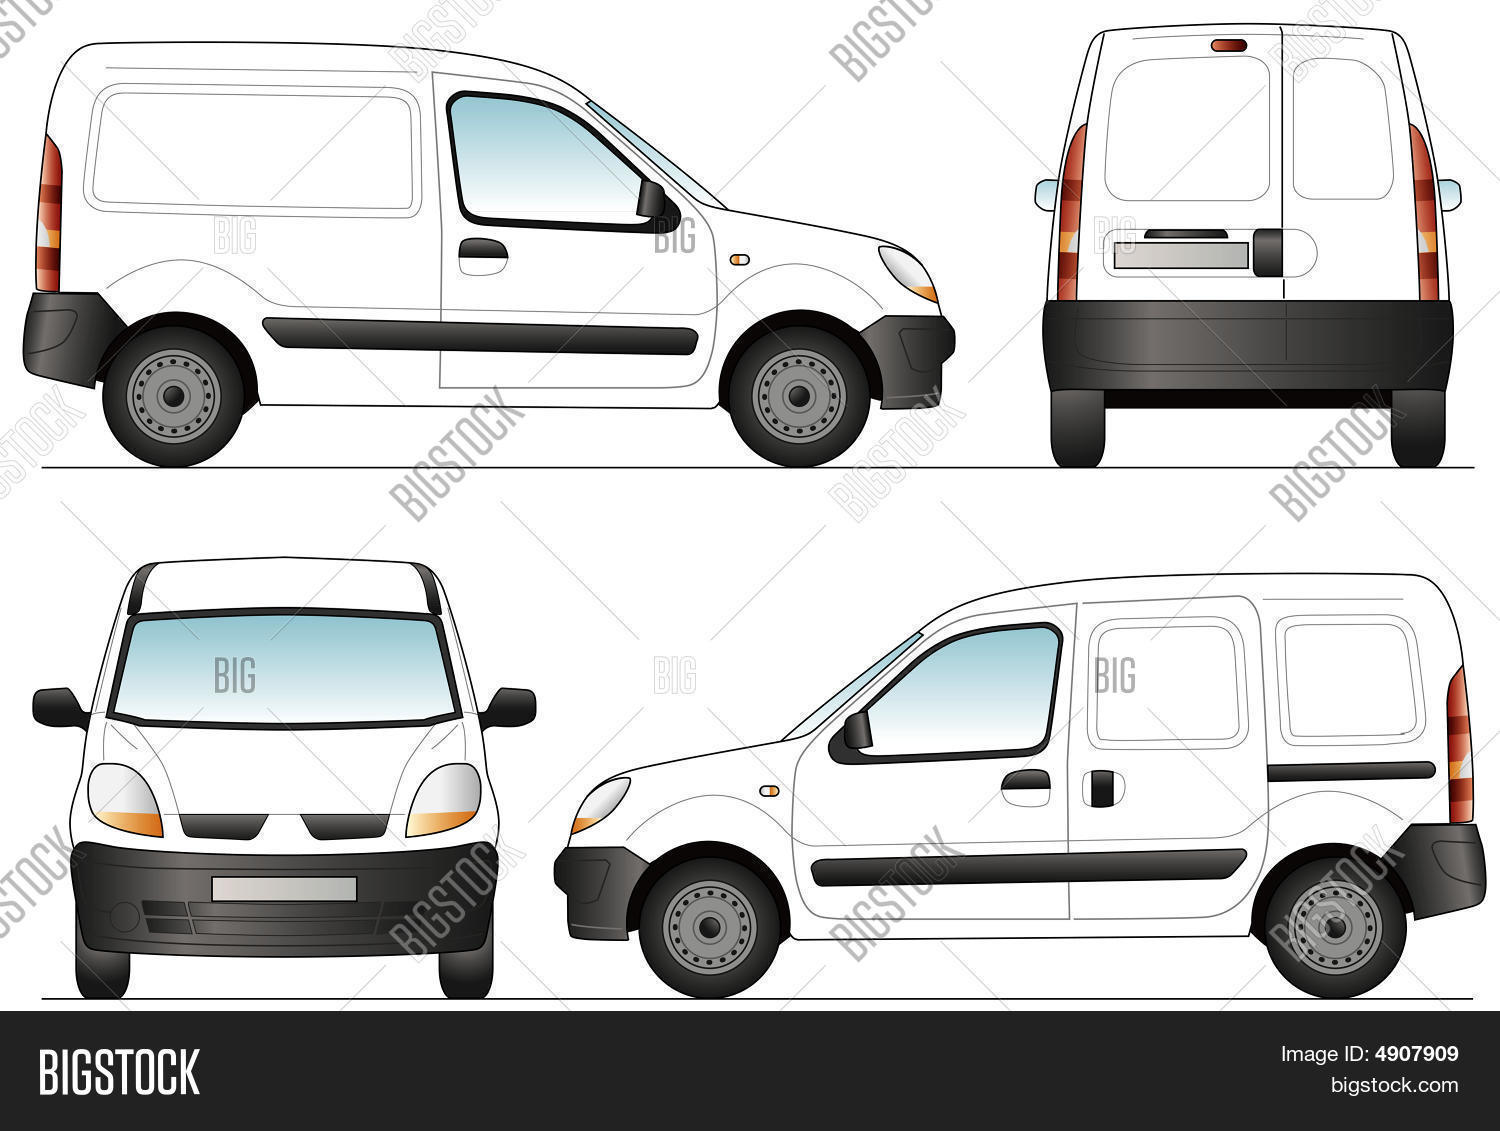 Delivery Van Template Vector & Photo | Bigstock